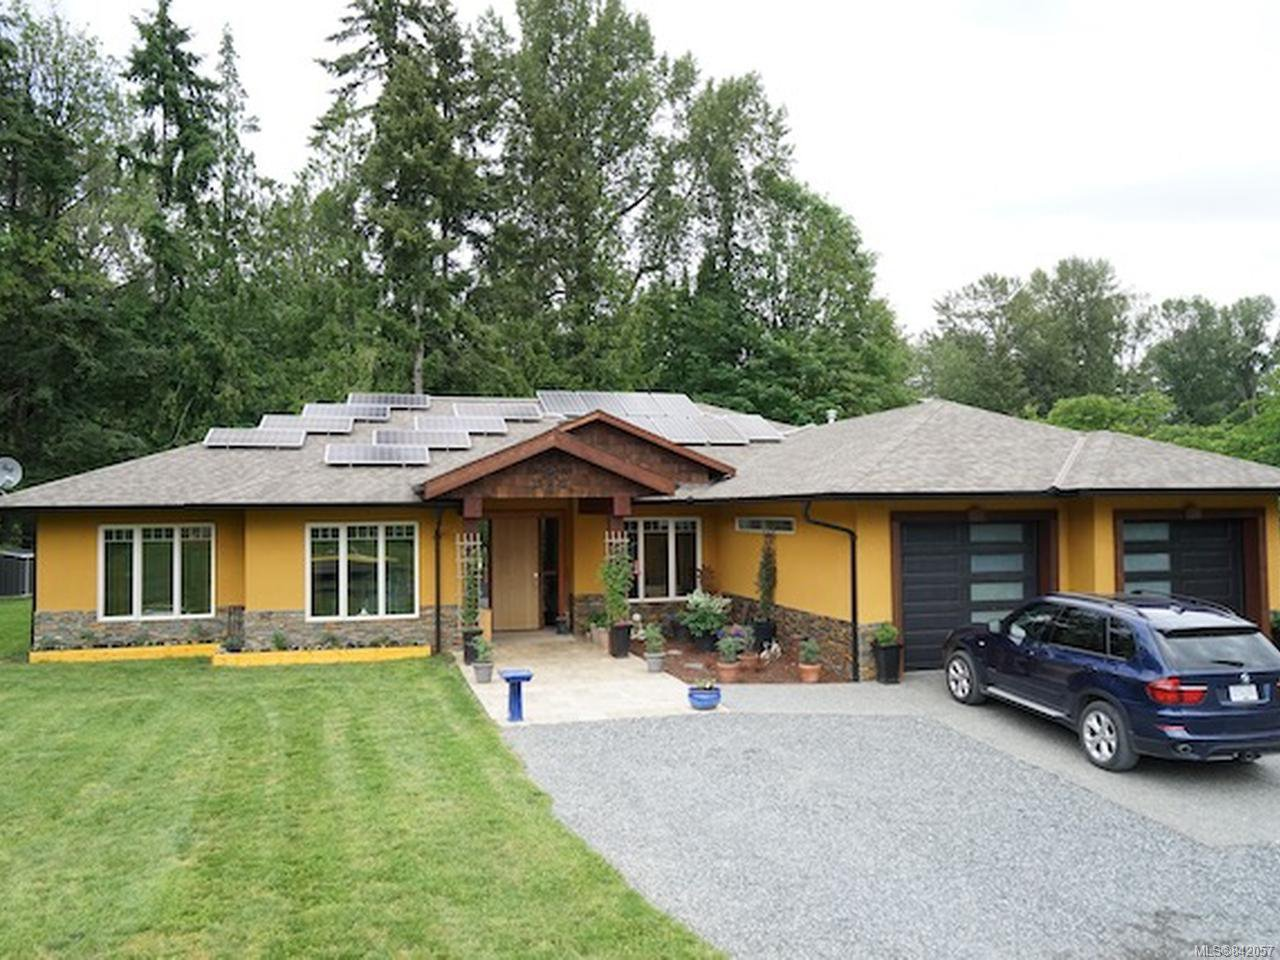 Main Photo: 1716 Vowels Rd in NANAIMO: Na Extension Single Family Detached for sale (Nanaimo)  : MLS®# 842057